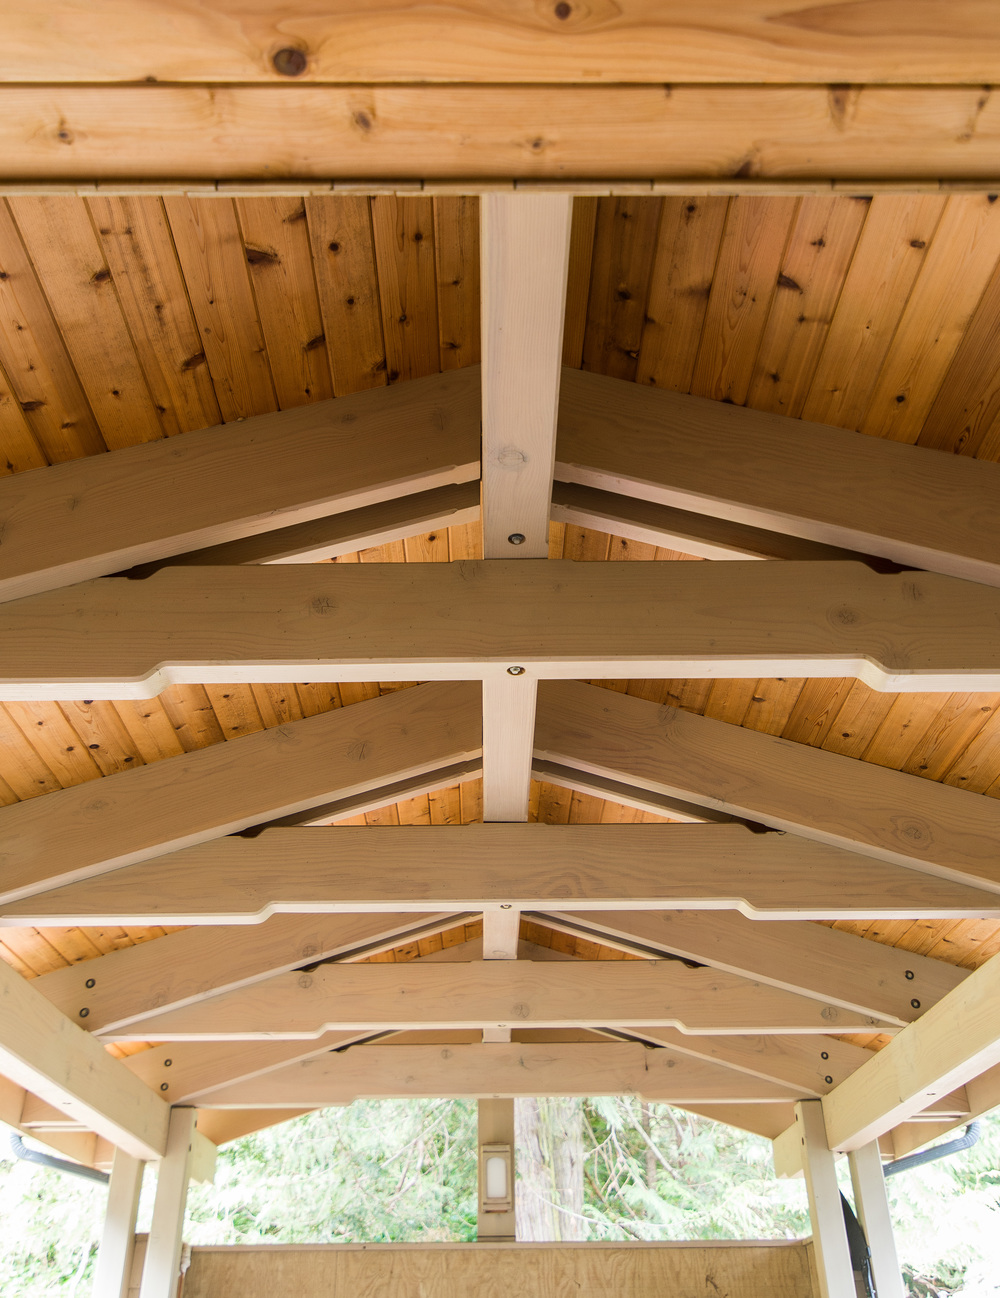 Beam work in Portecochere, also seen in picture number 2, was not in the original drawings, but I convinced the client this along with circle driveway would be great addition.....Eldon did a fantastic job detailing this home. Truly miss working with him.